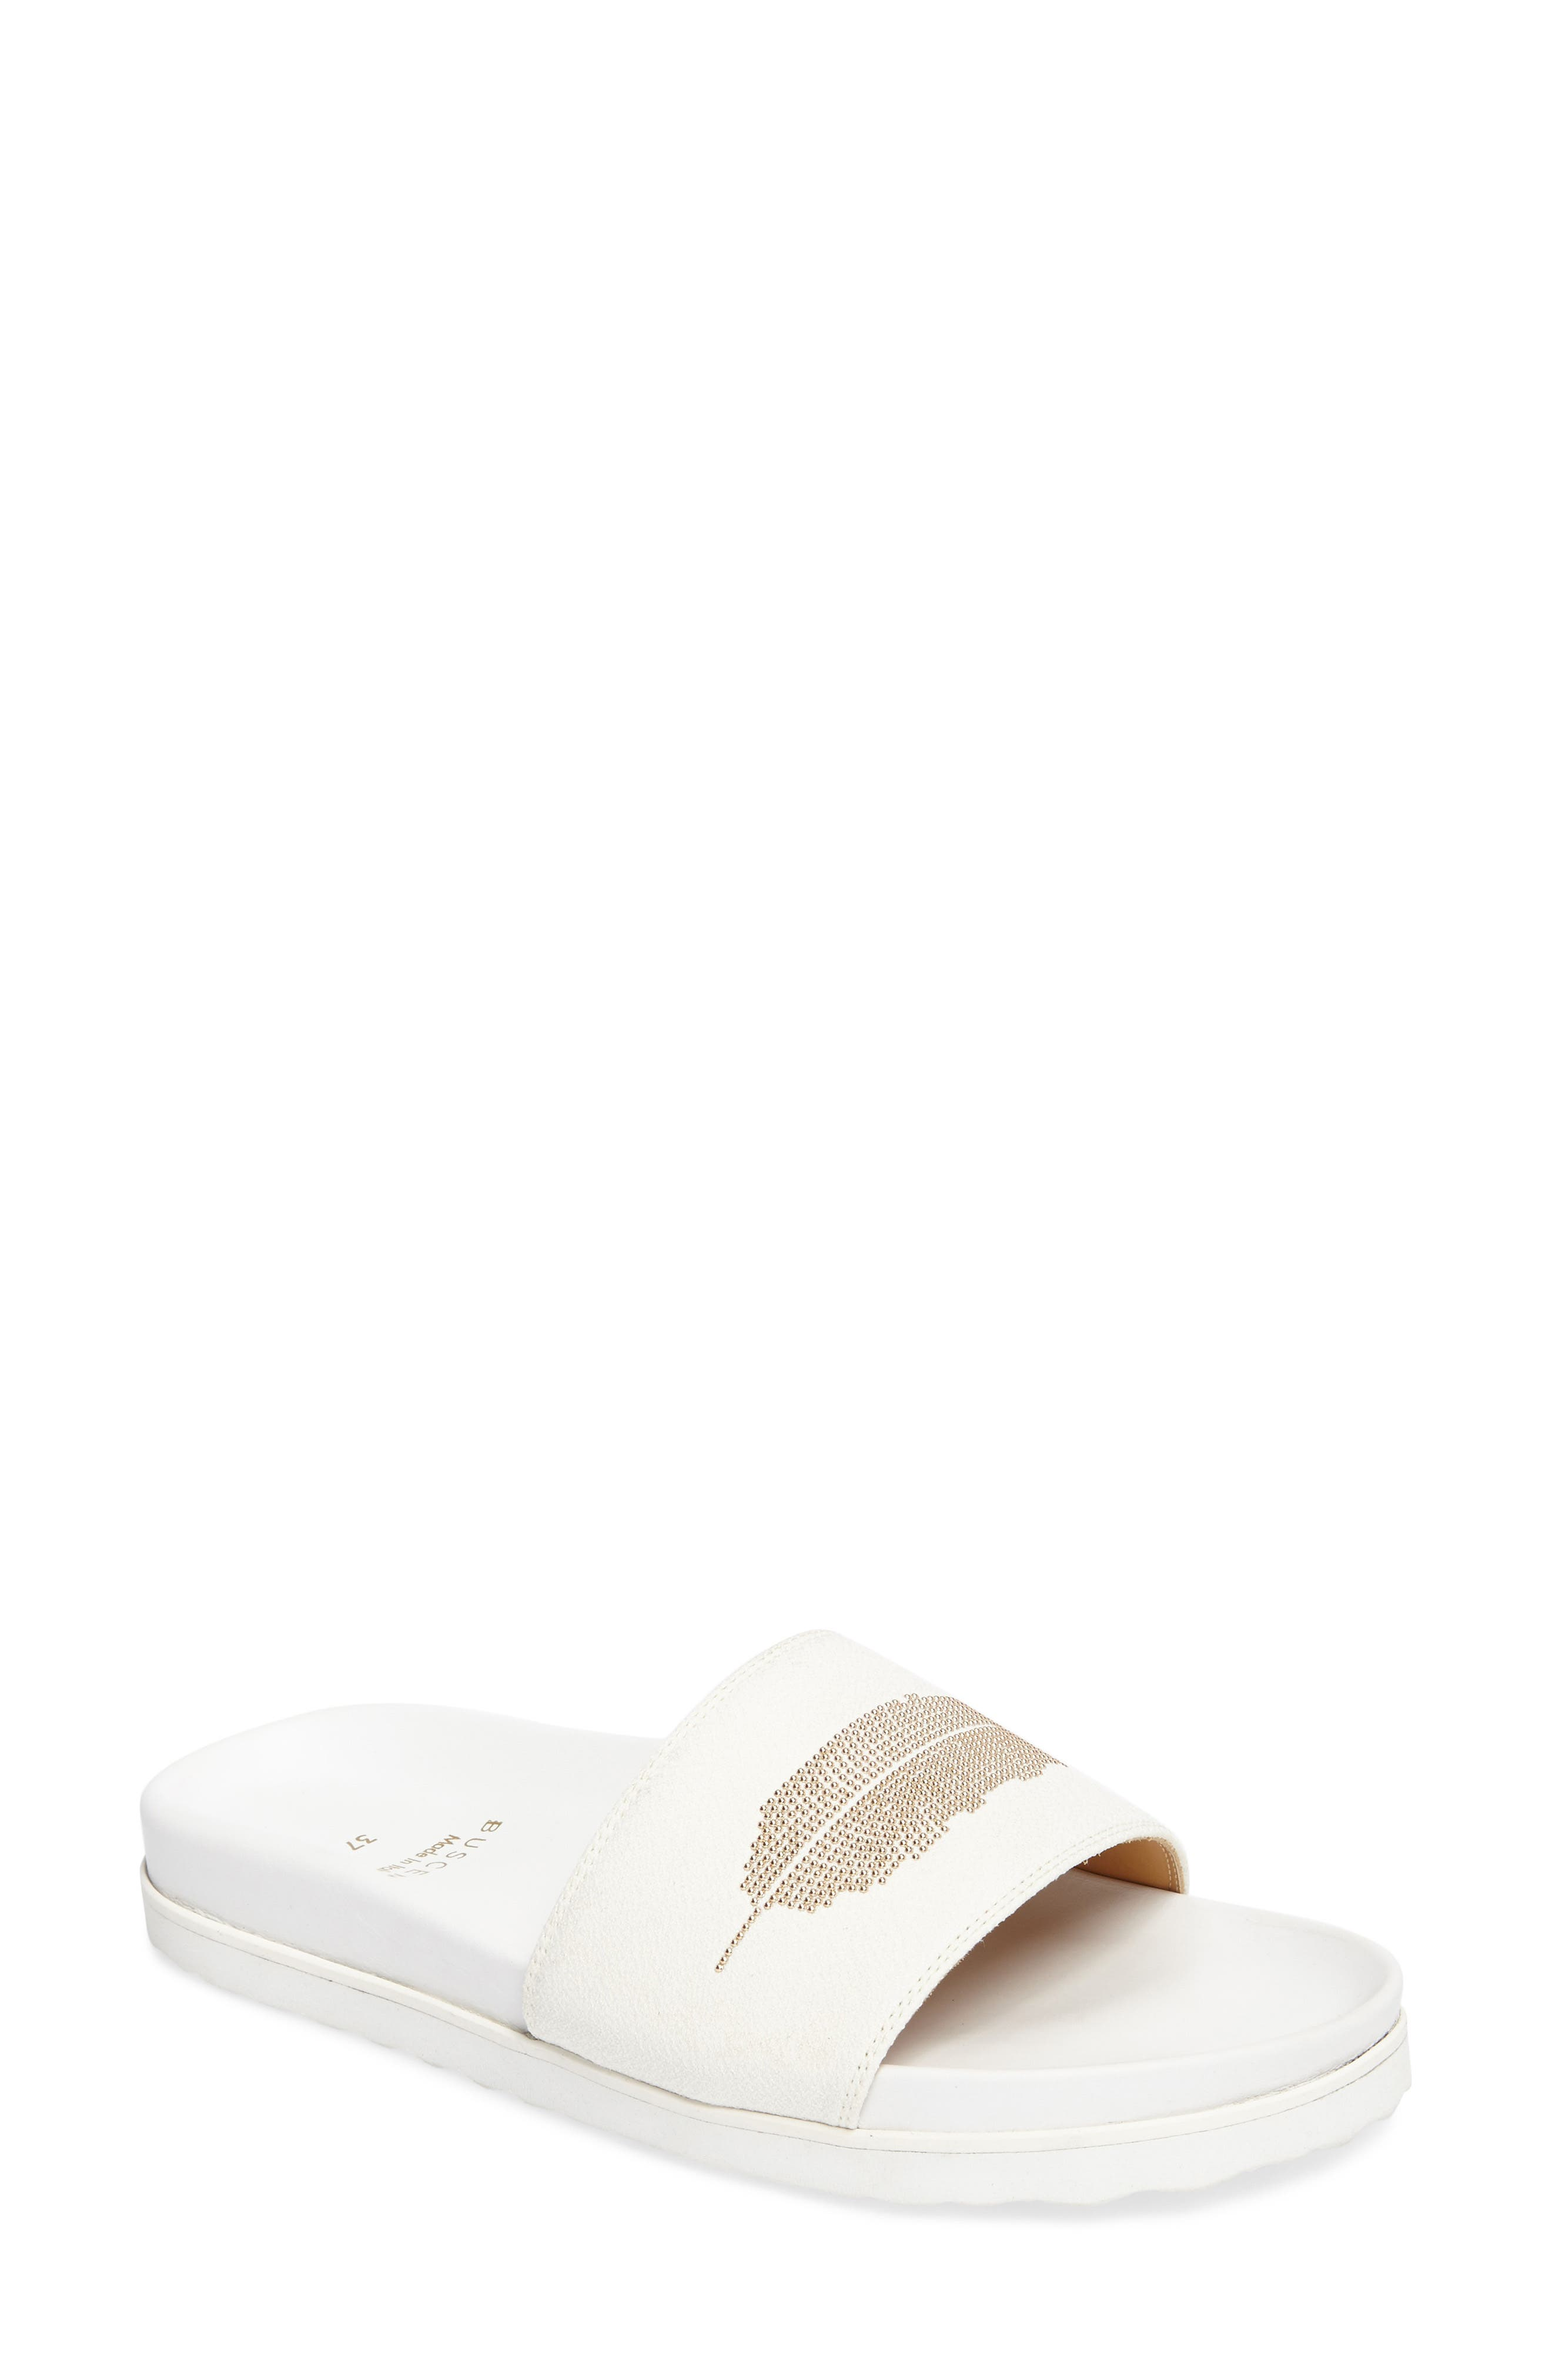 Crepone Feather Slide Sandal,                             Main thumbnail 1, color,                             100